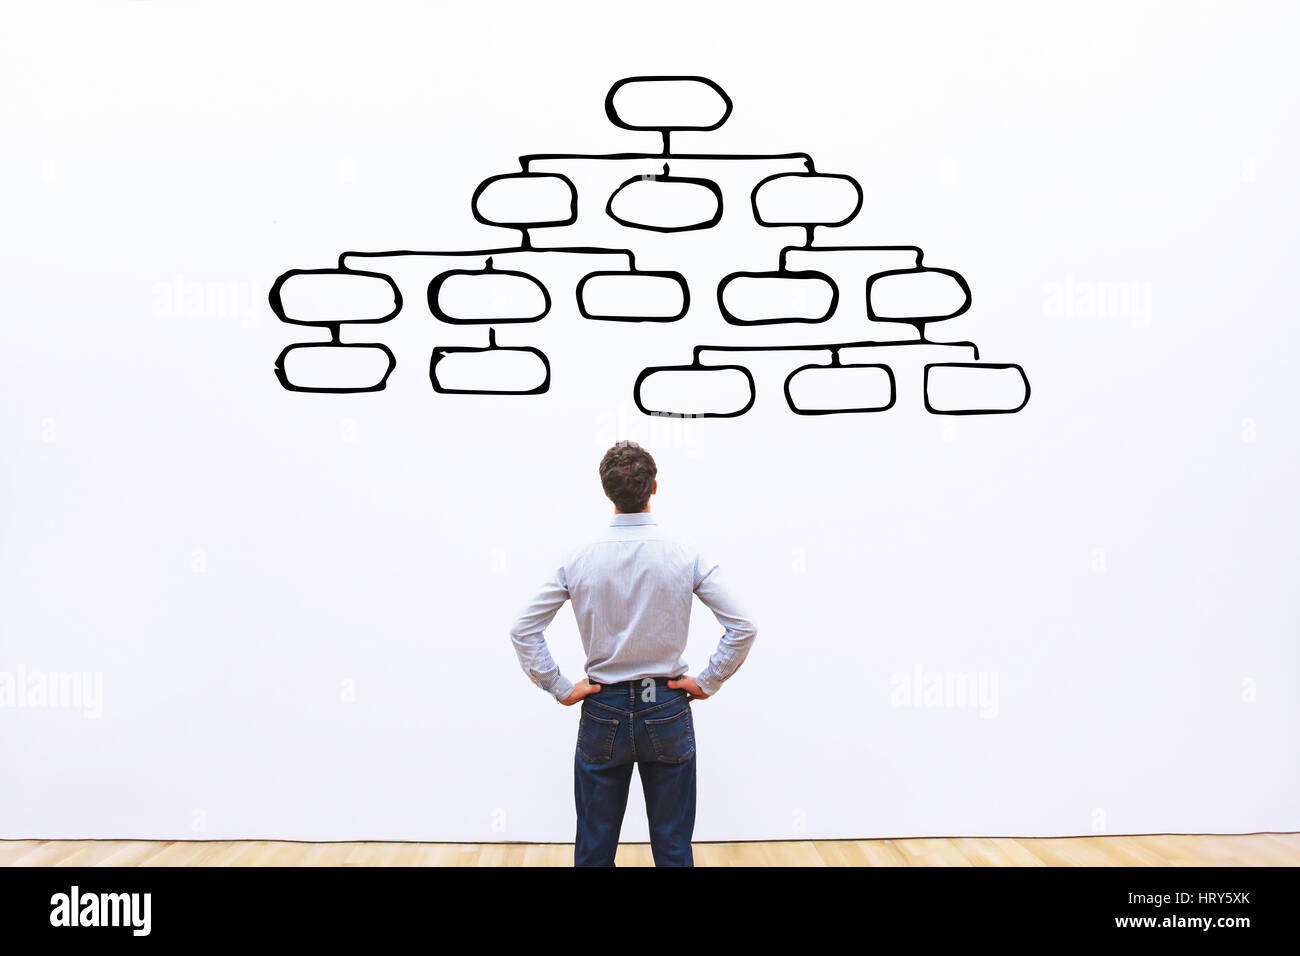 mindmap concept, business man looking at the scheme of hierarchy, management of organization, organigram - Stock Image